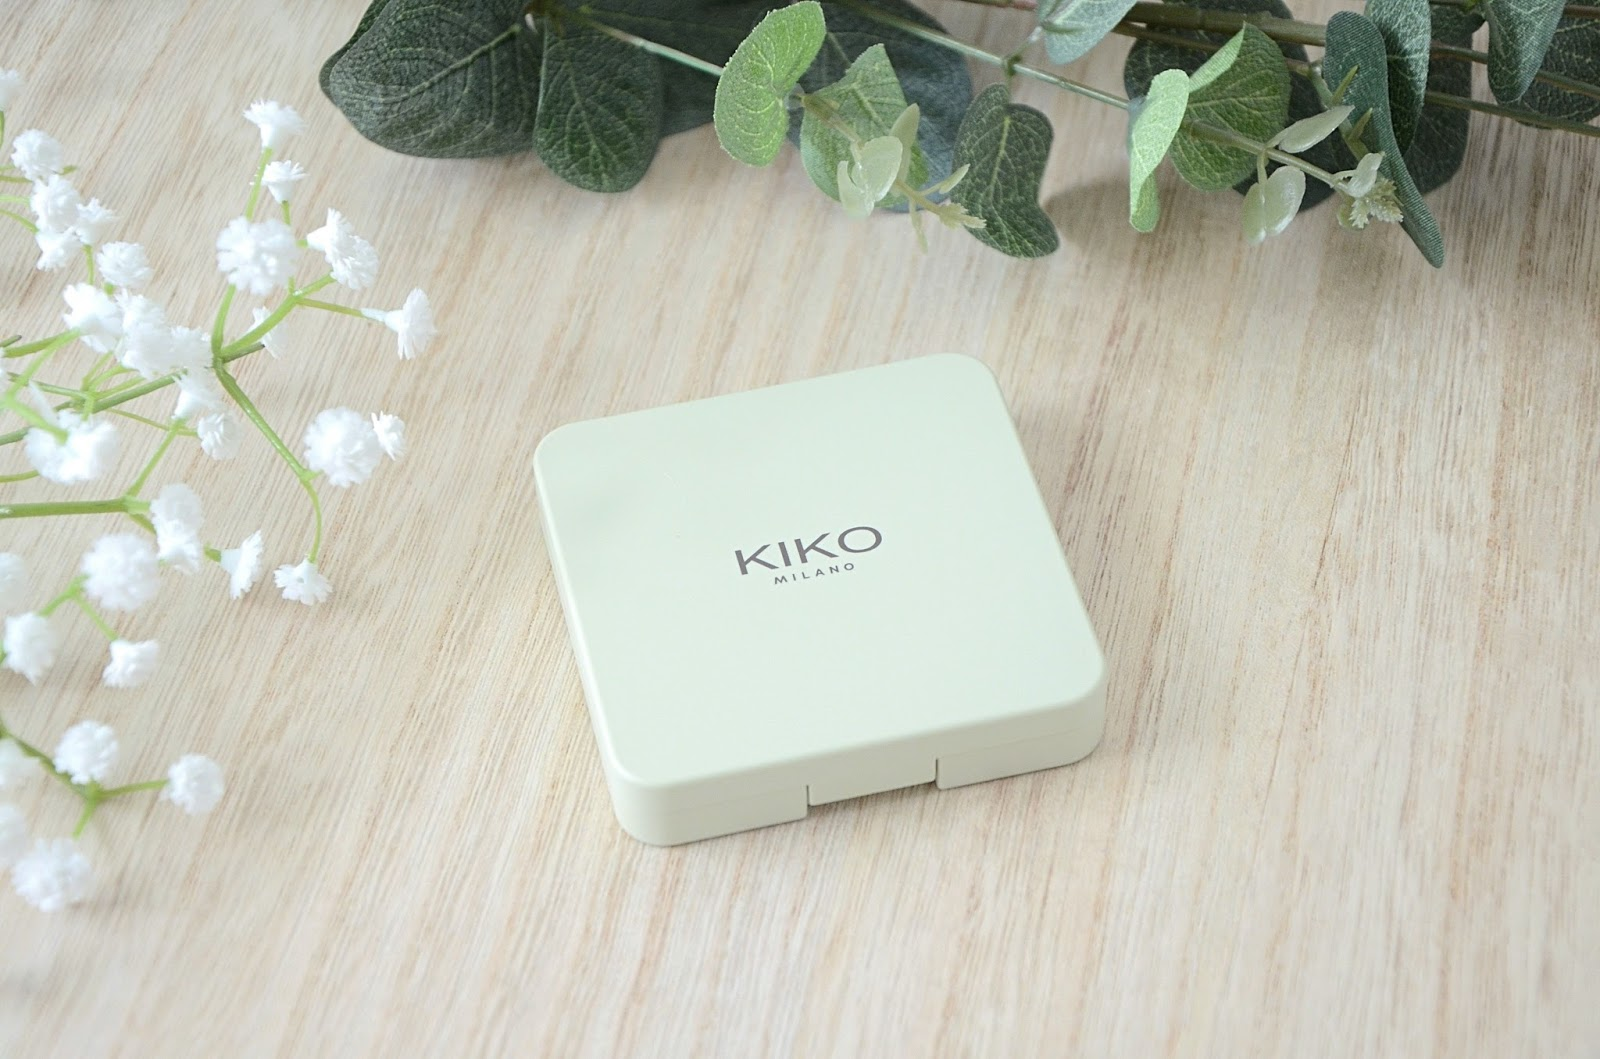 palette 01 natural credential green me 01 kiko packaging